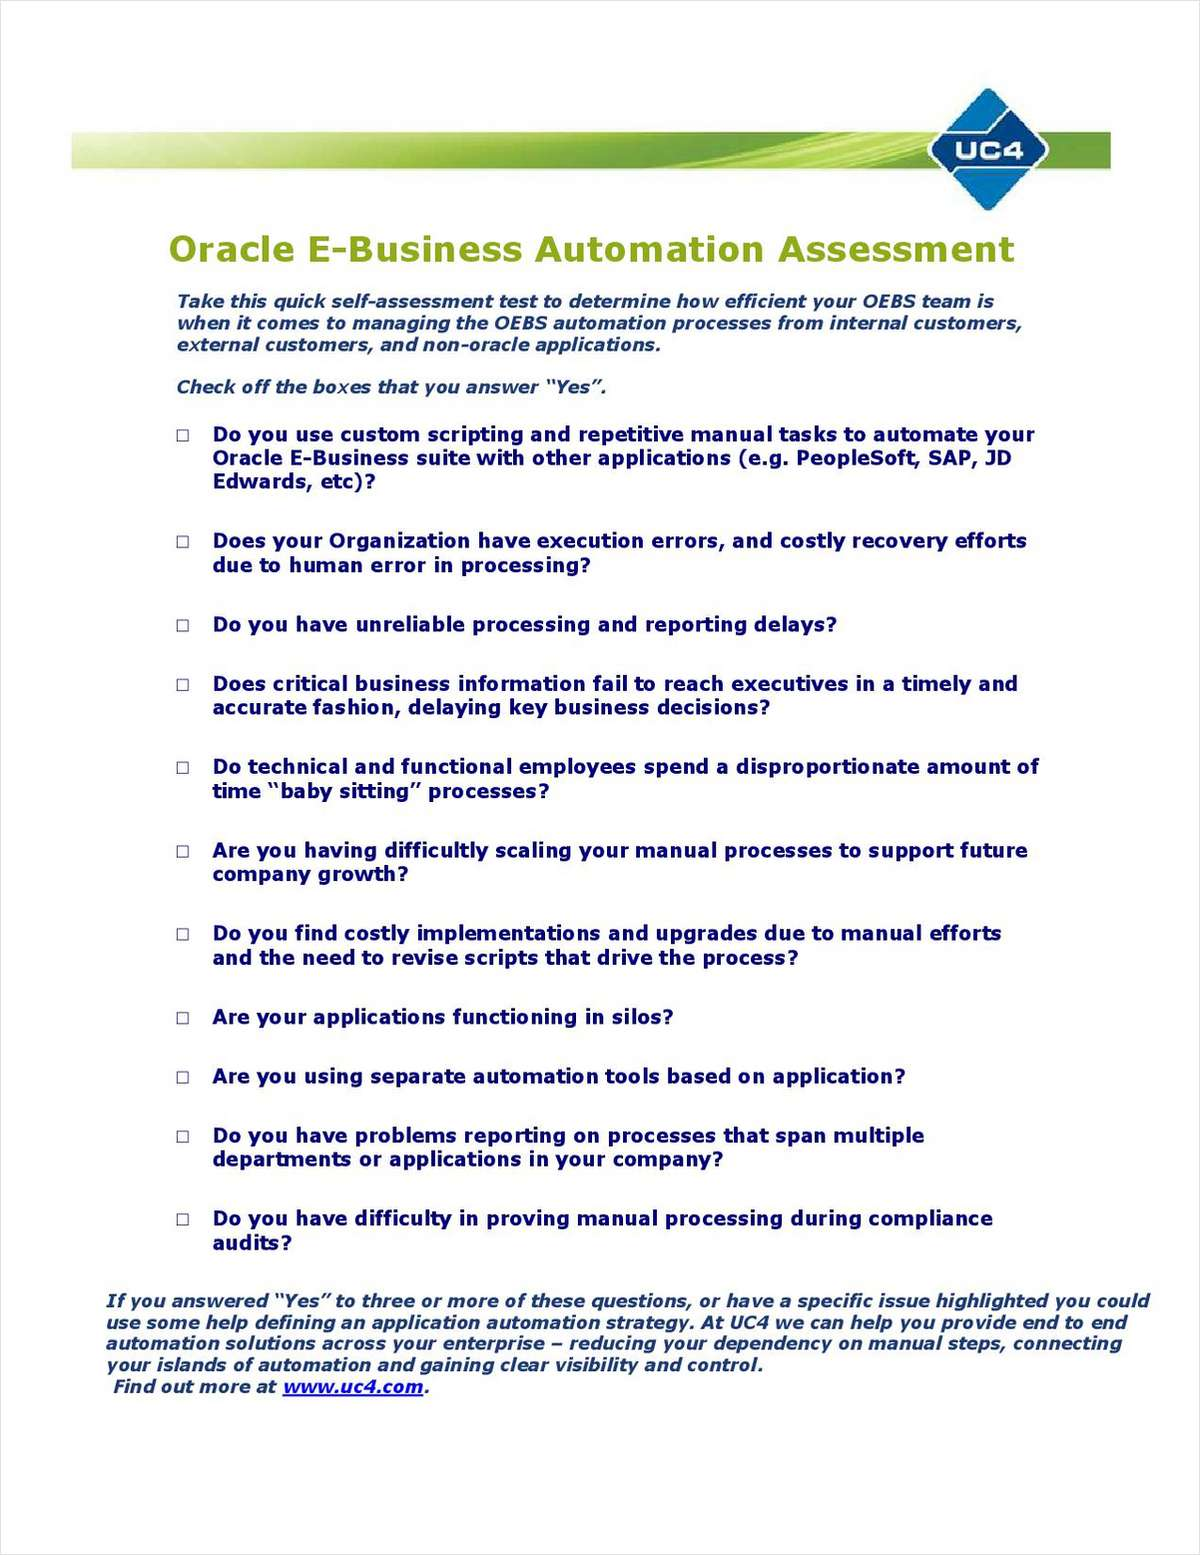 Oracle E-Business Suite Automation Kit